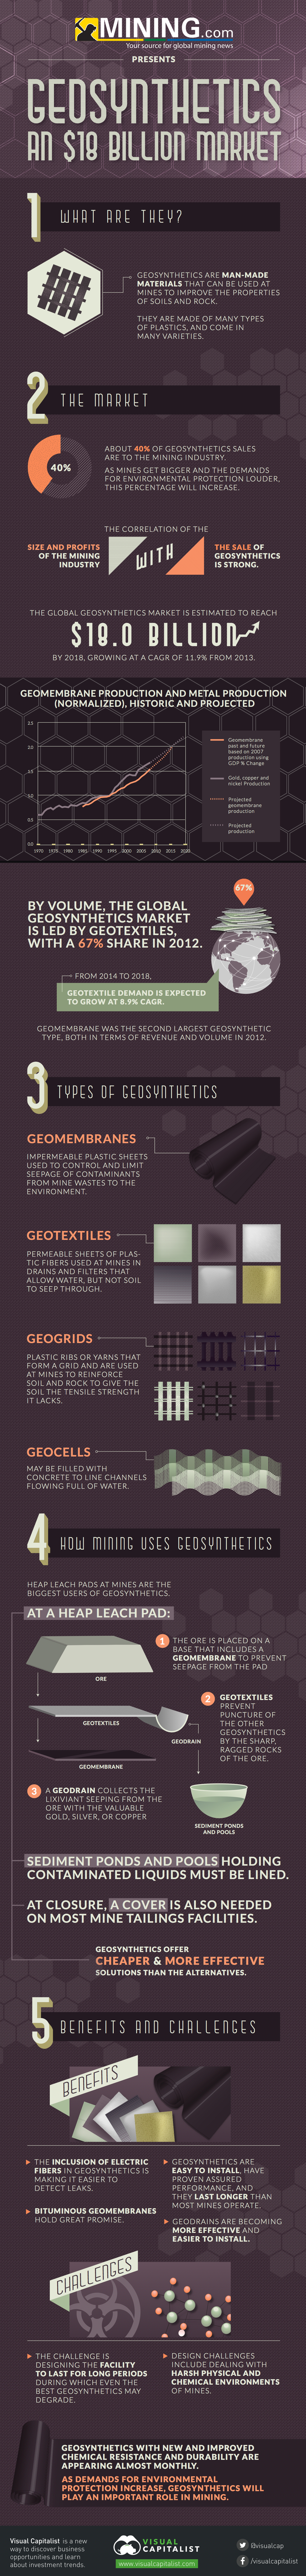 INFOGRAPHIC: Geosynthetics — an $18 billion market